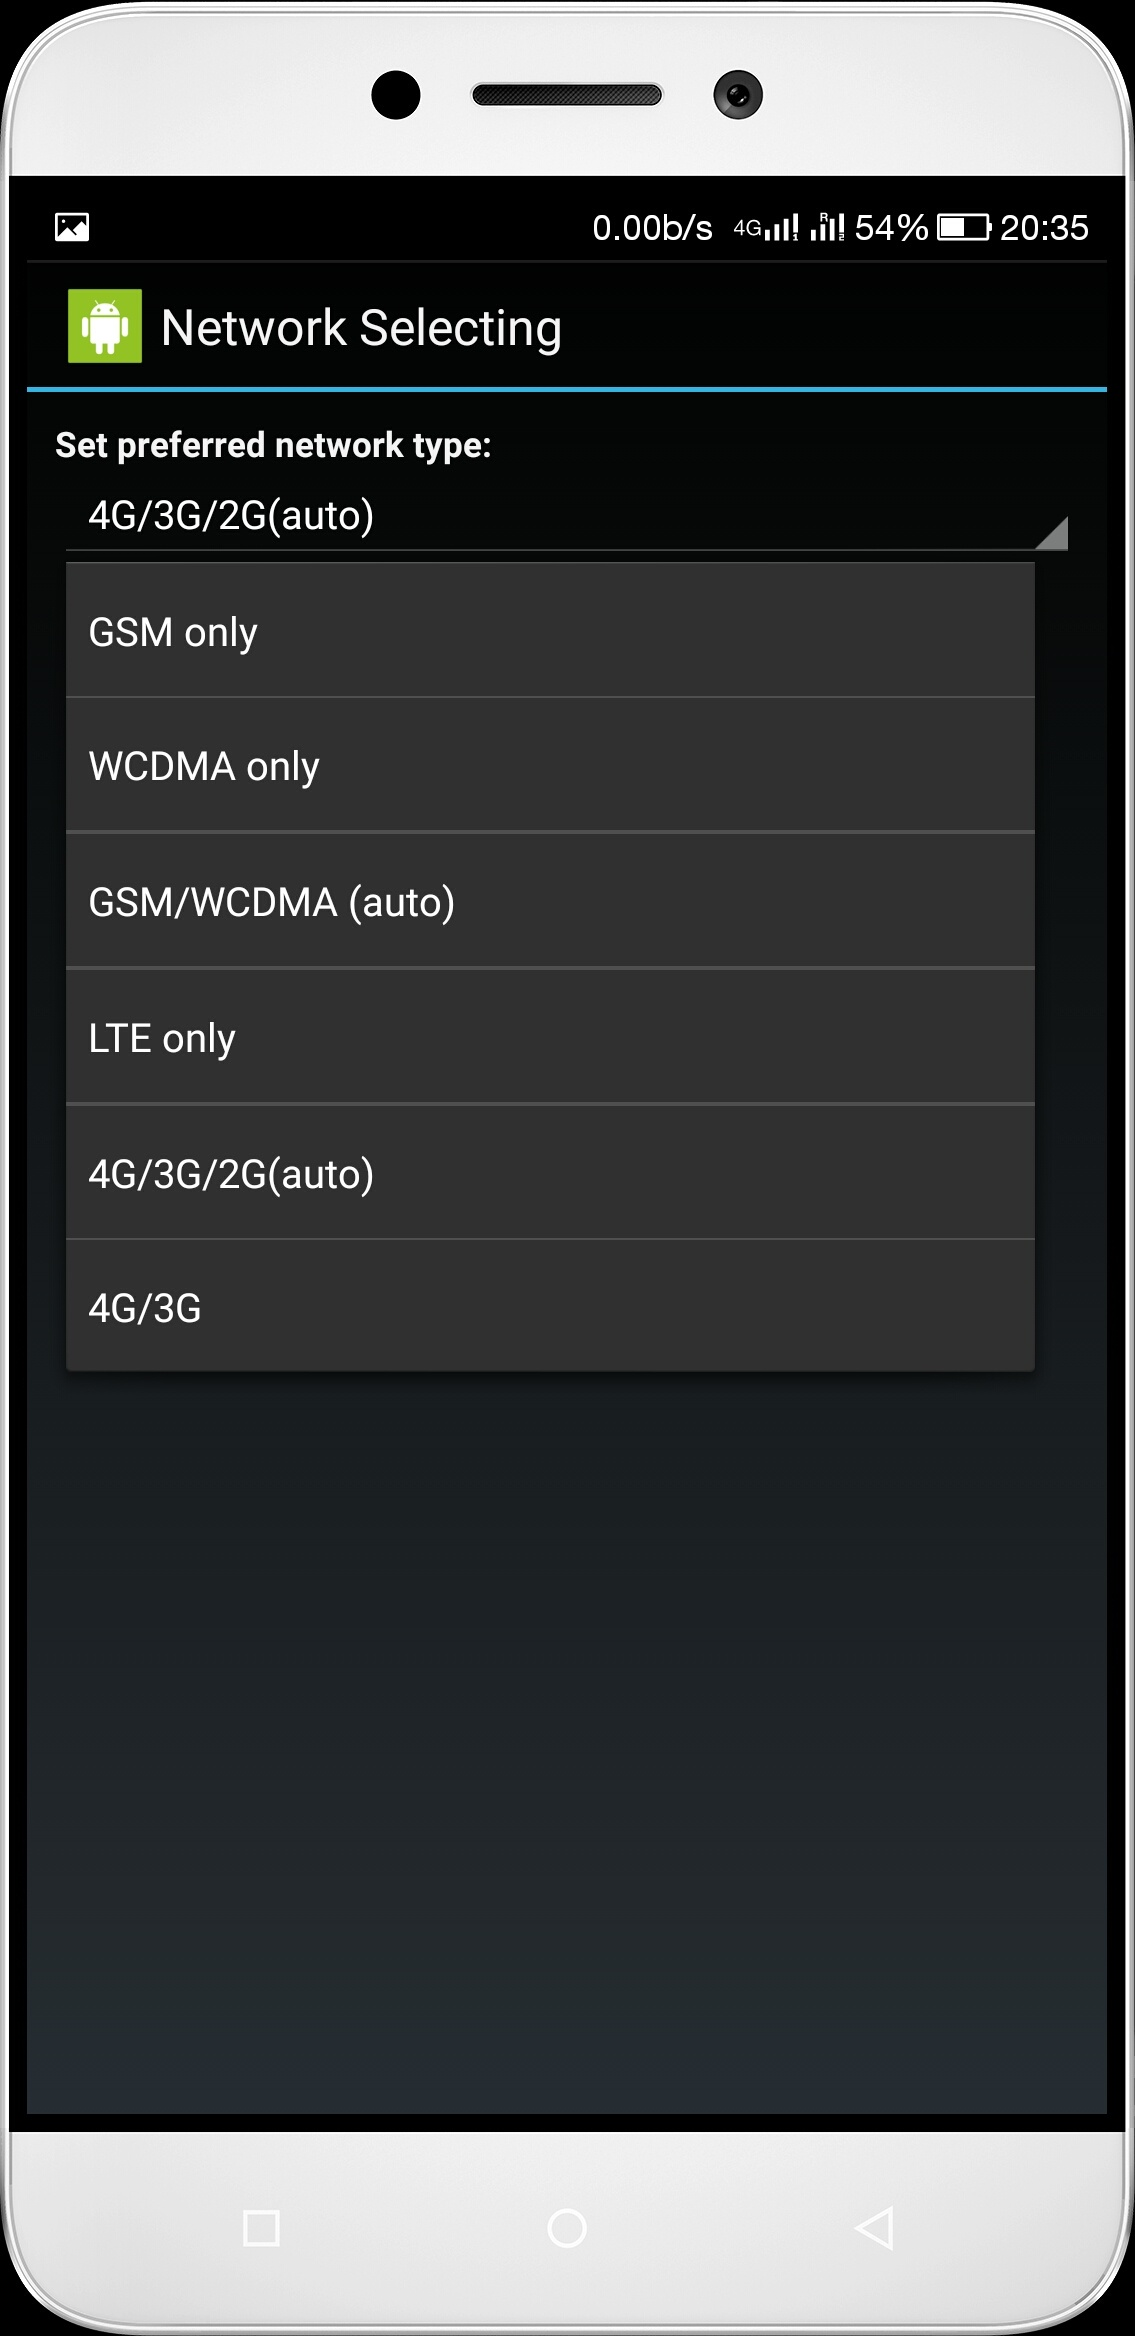 How to change from LTE to VoLTE in a Vivo Y51L mobile - Quora